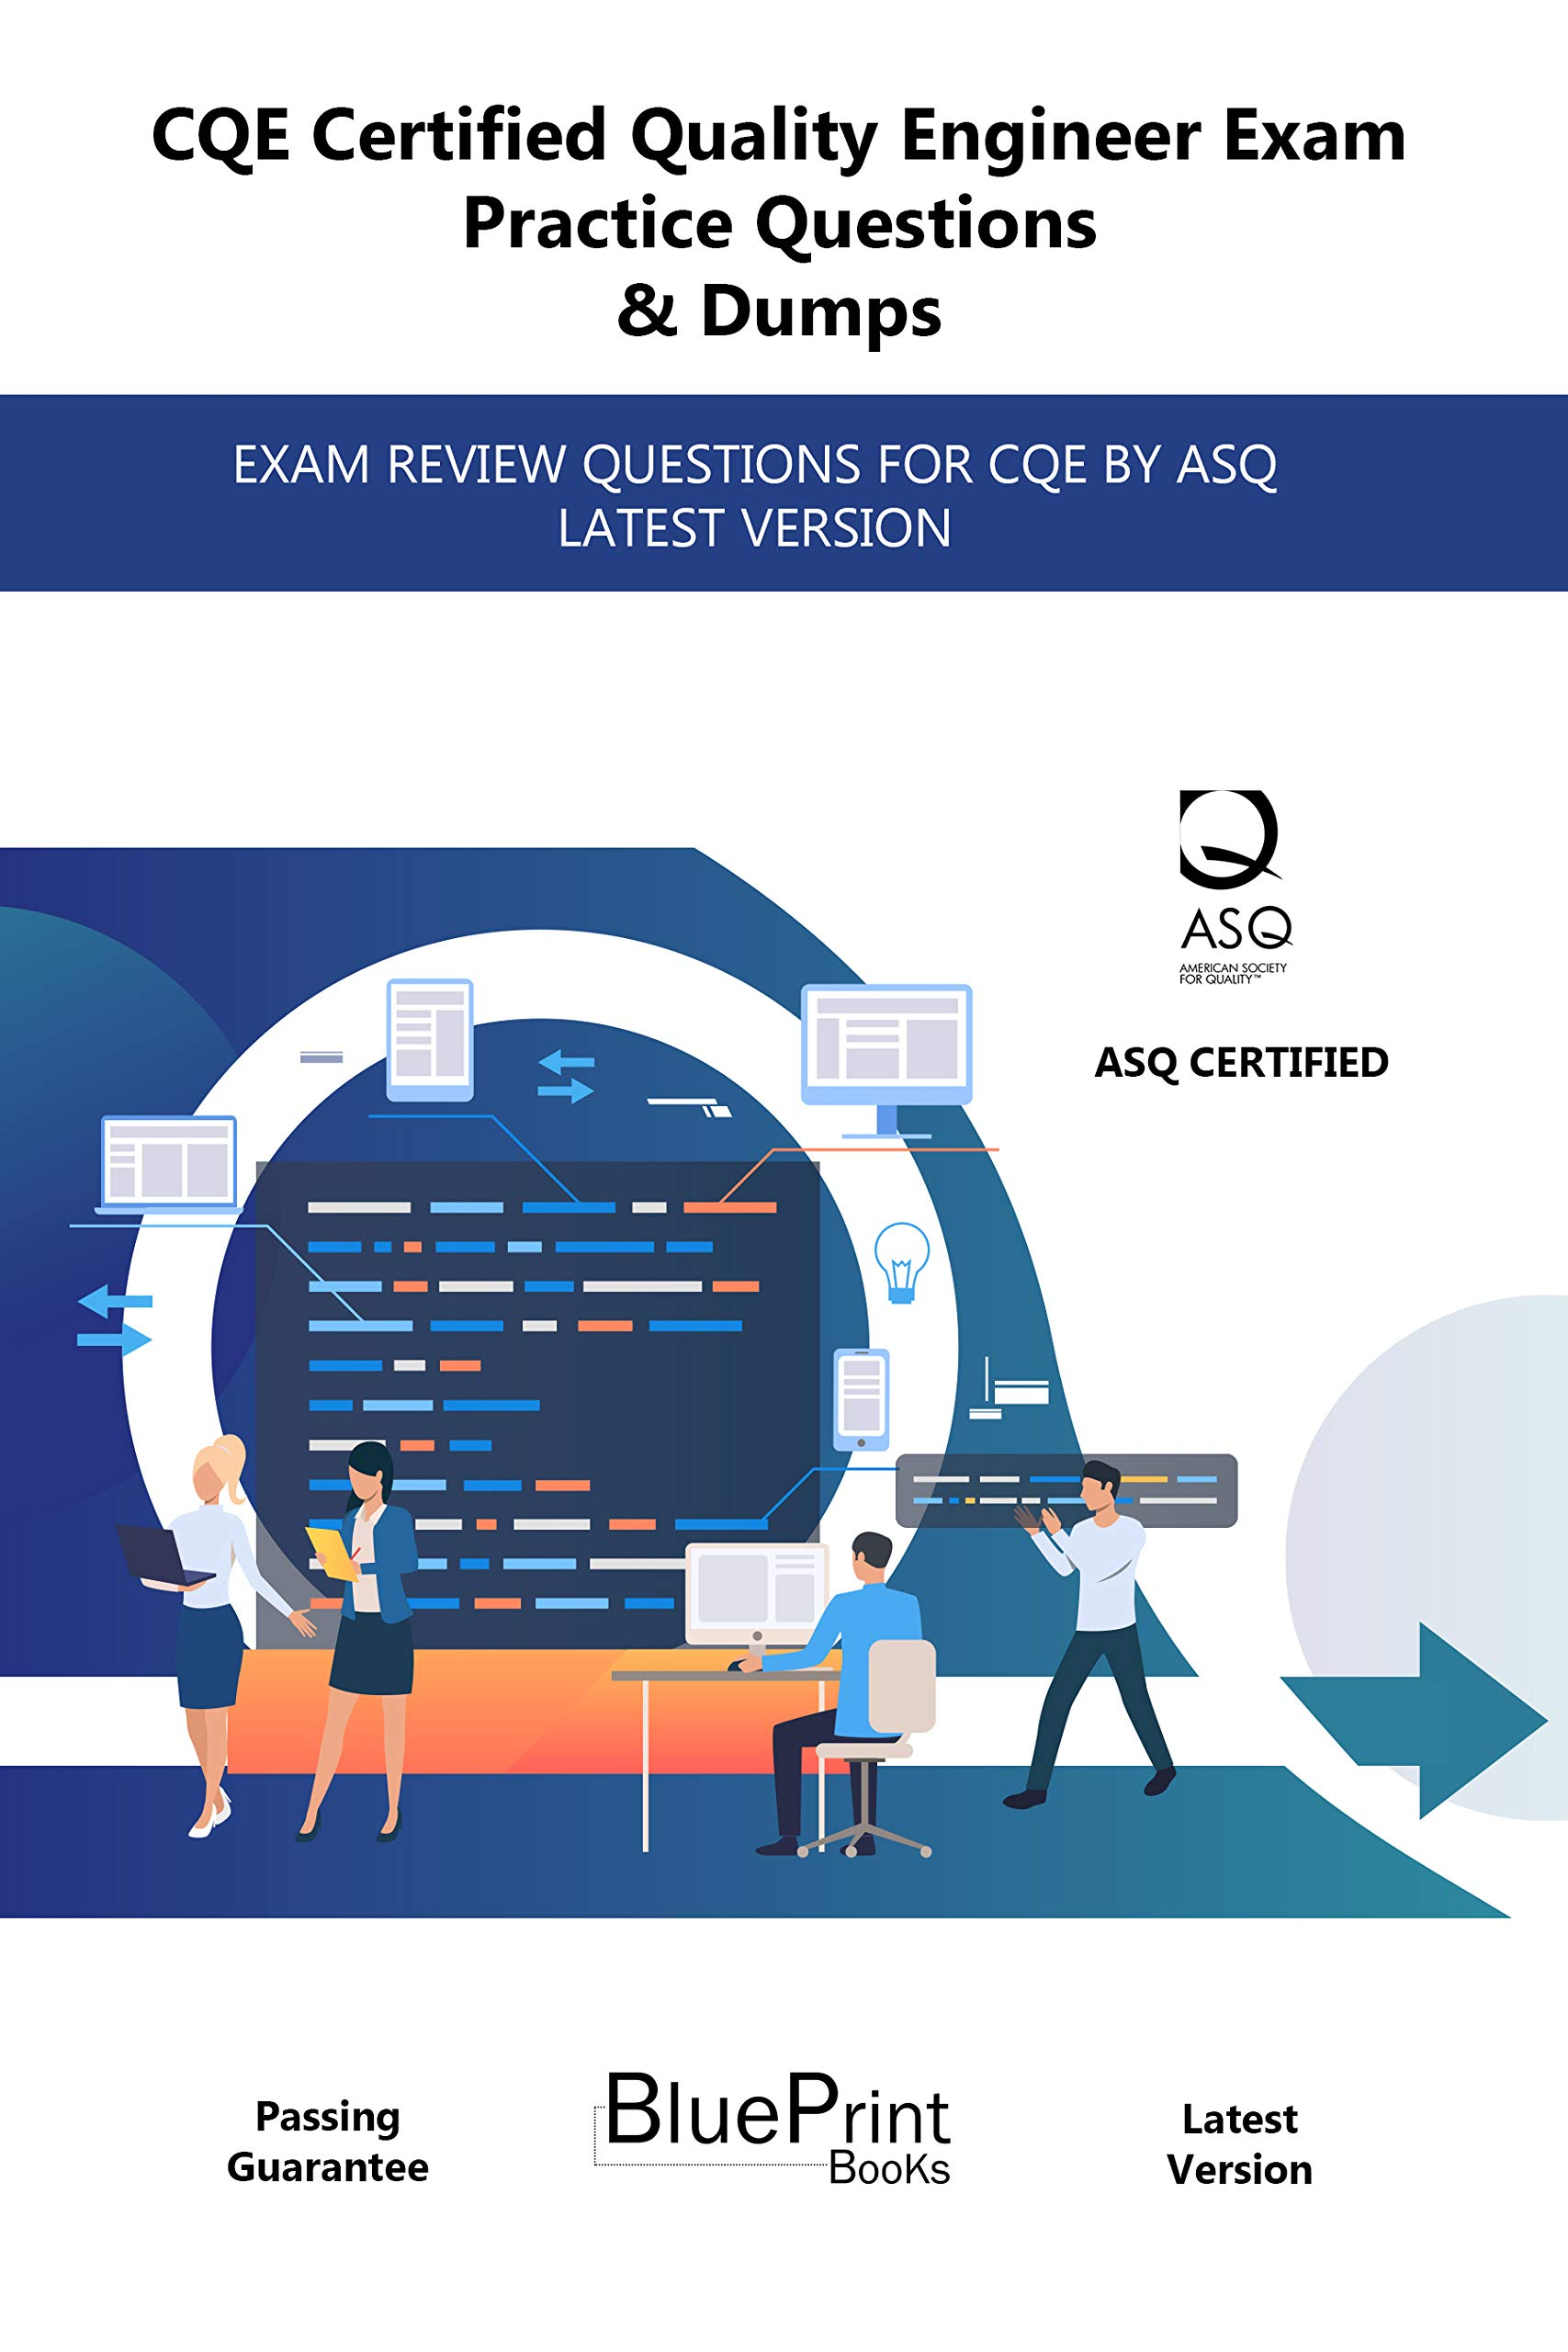 CQE Certified Quality Engineer Exam Practice Questions & Dumps: EXAM REVIEW QUESTIONS FOR CQE BY ASQ LATEST VERSION